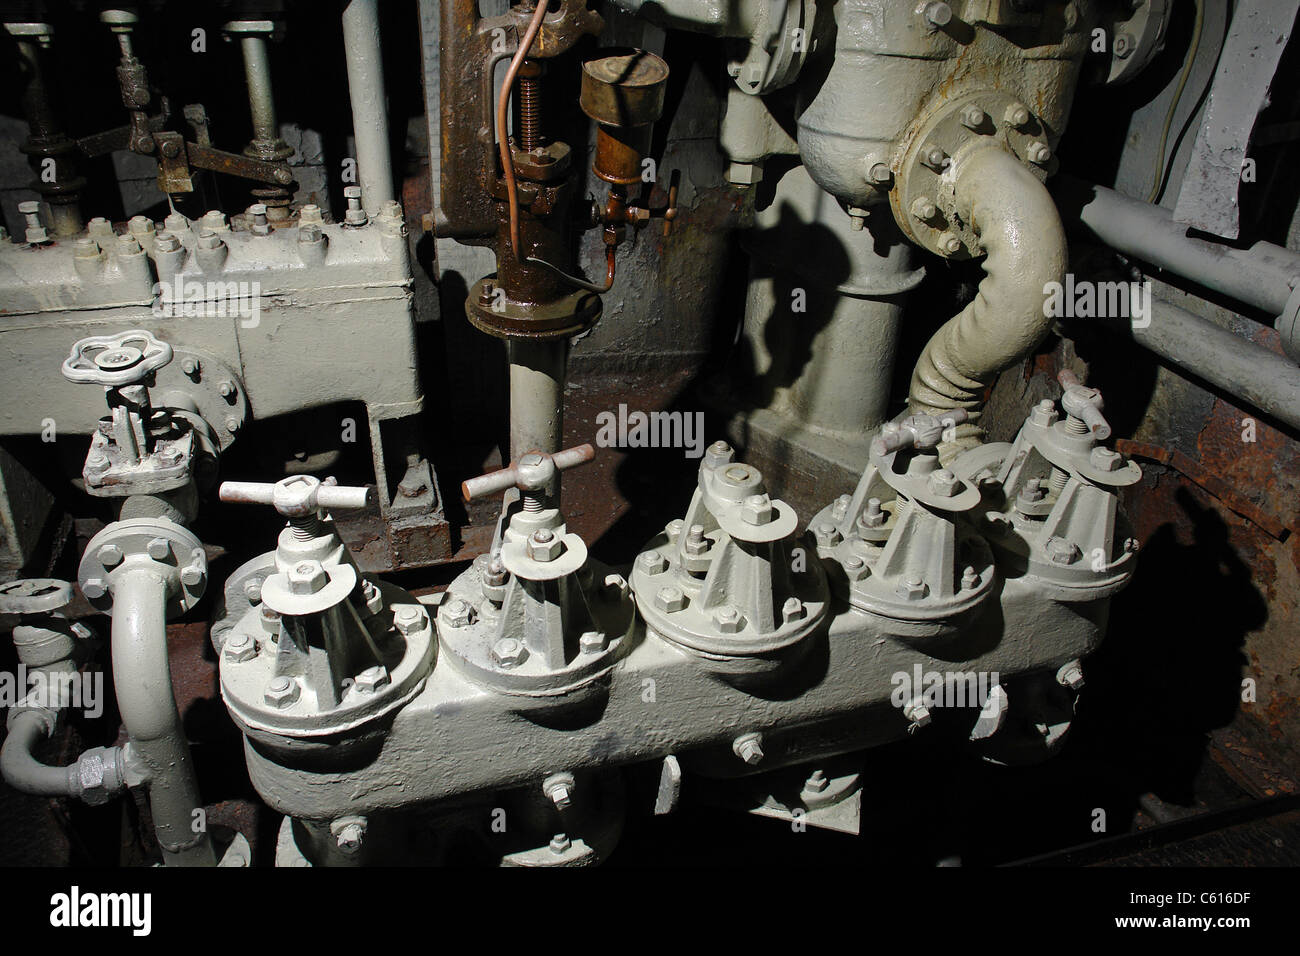 Steam Power Engine Based Ship Machinery Room - Stock Image